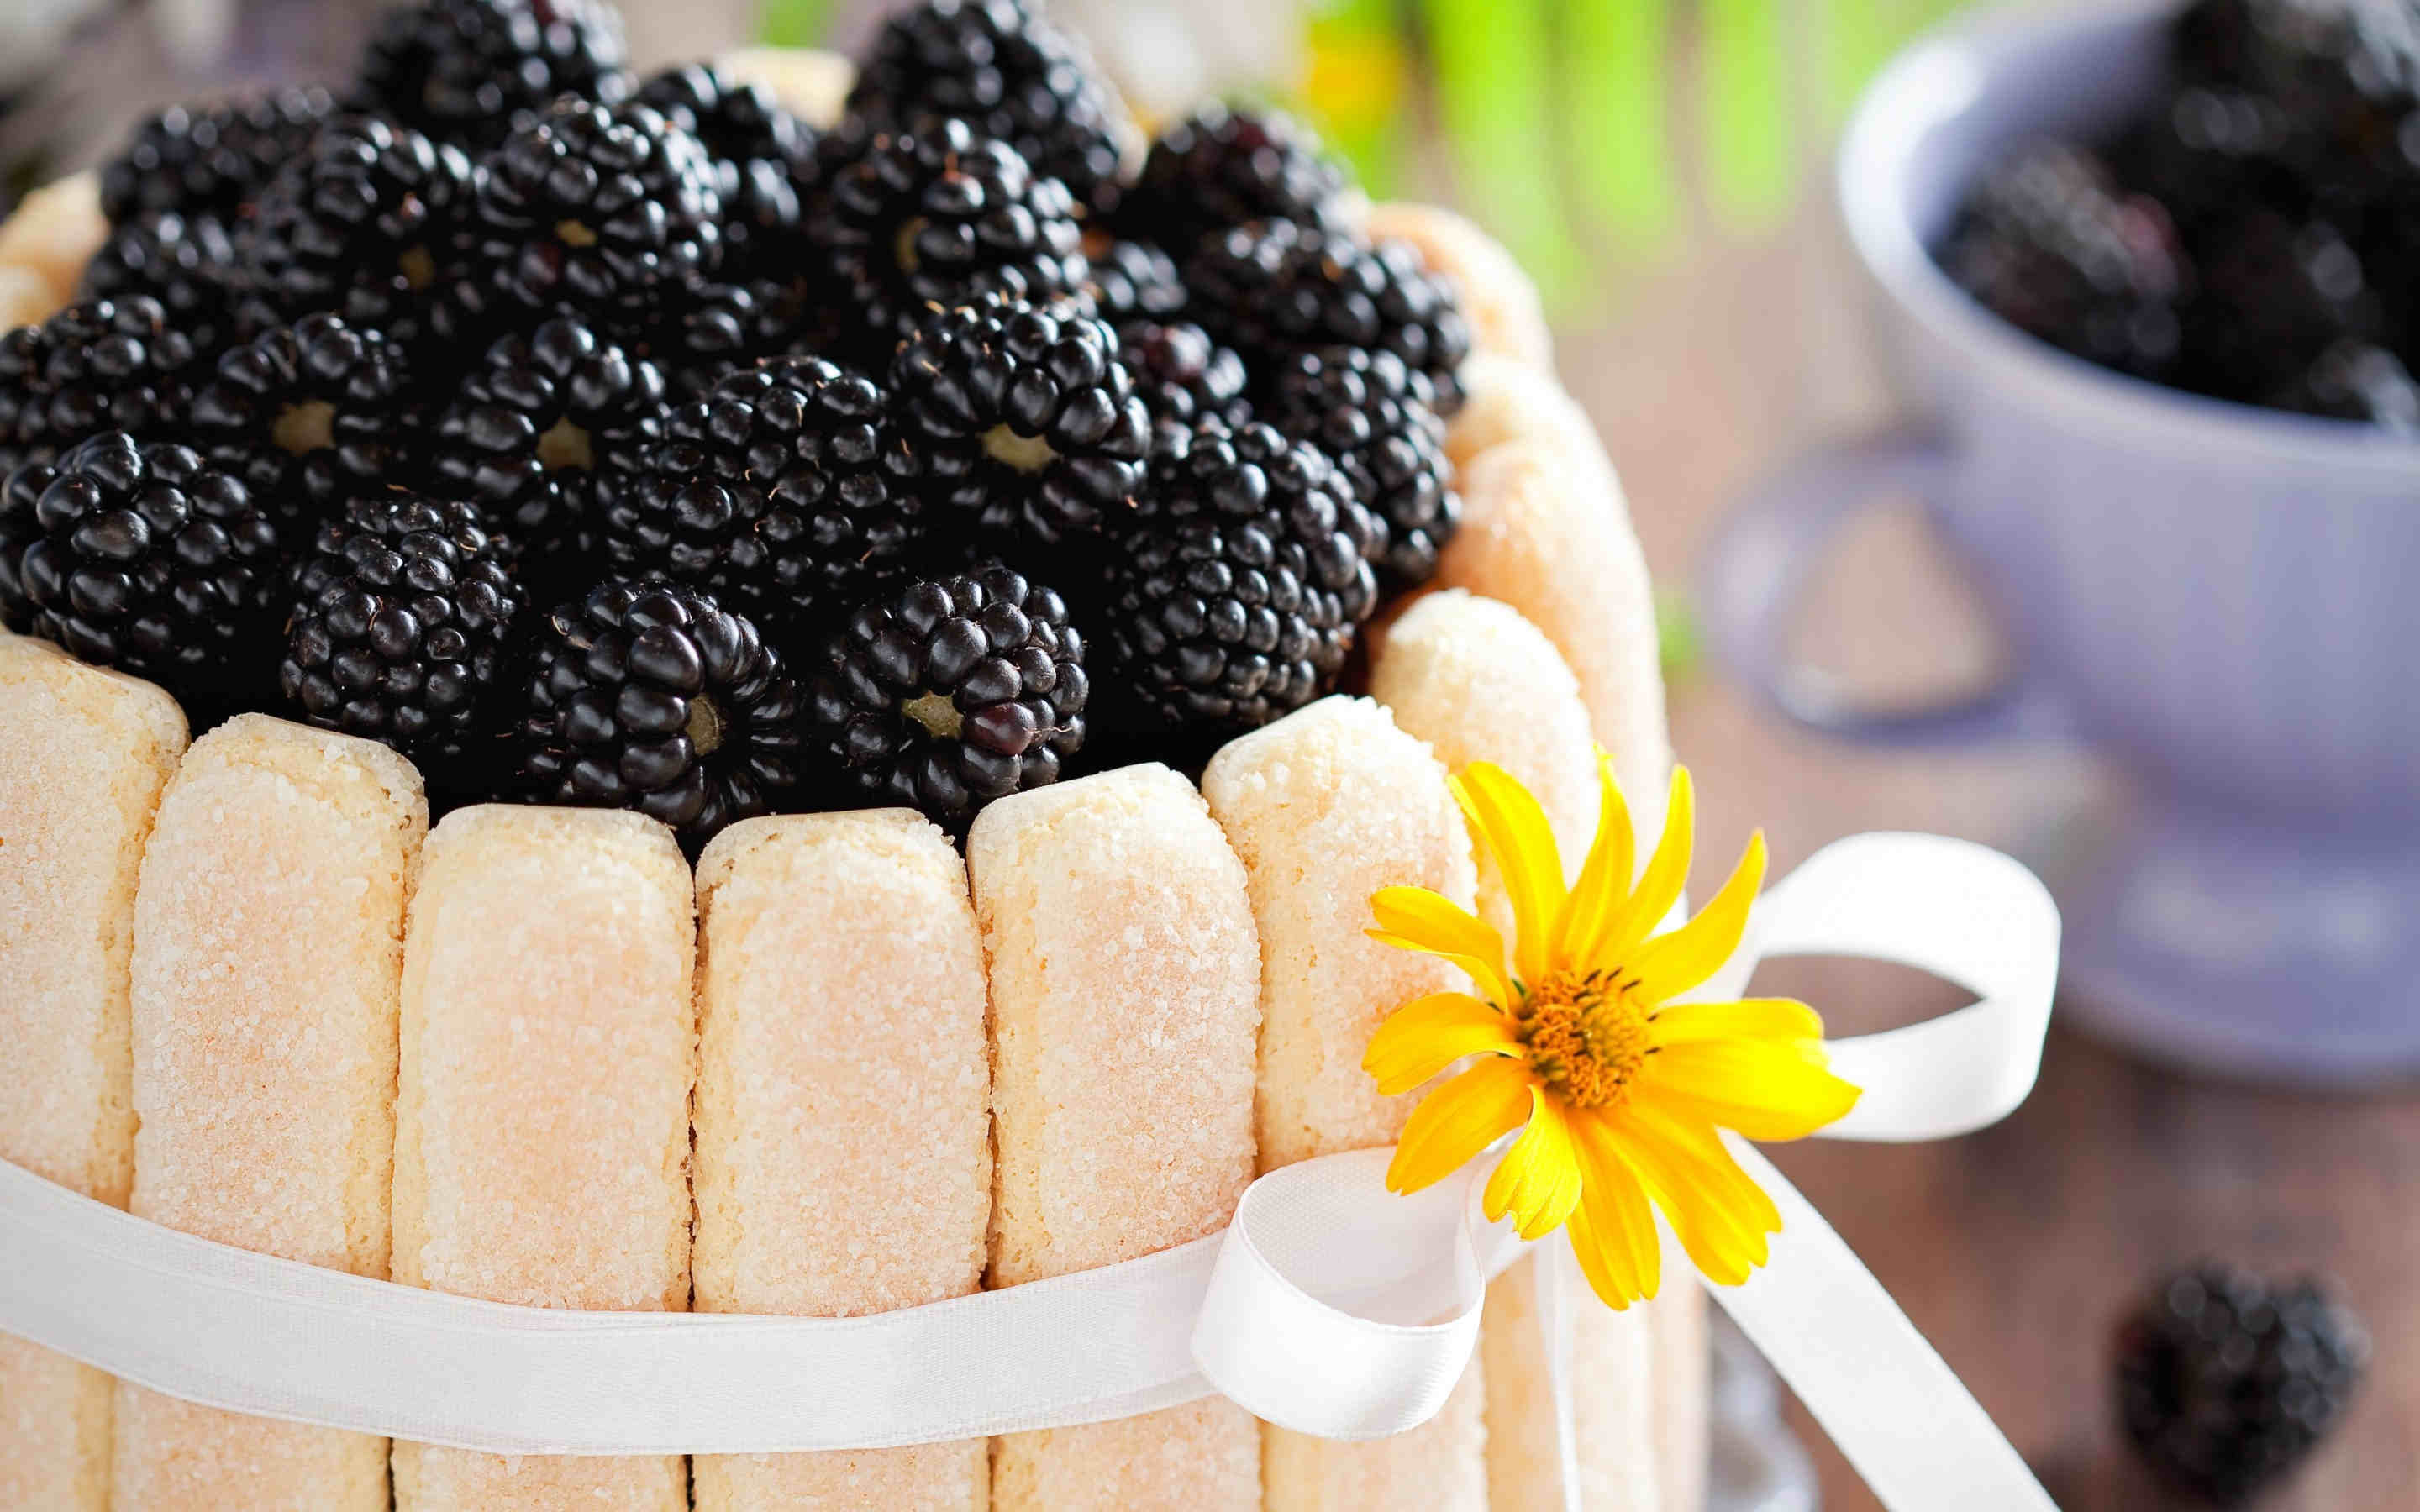 Yummy Blackberry Food Wallpaper